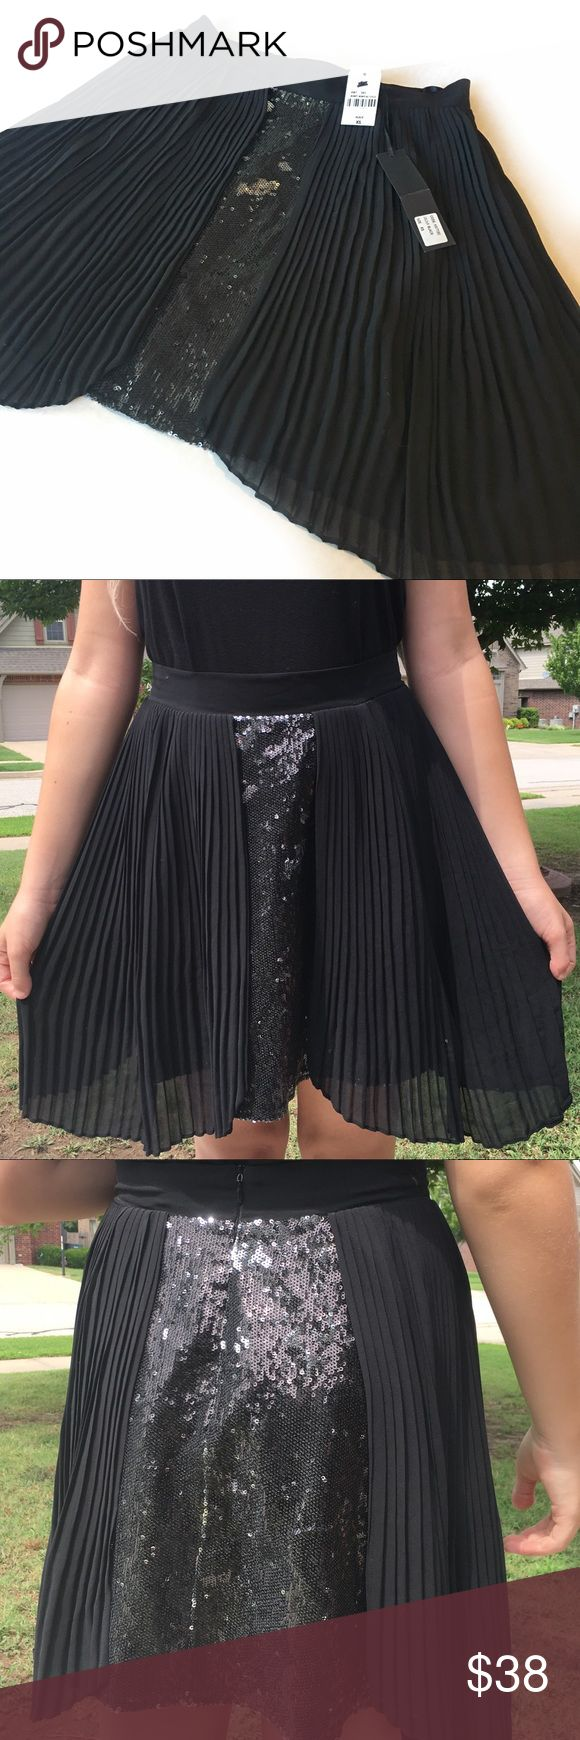 """LF Kiwi Tucker two toned black sequin skirt Sold at LF stores. Kiwi Tucker two toned sequin and pleated black skirt. Longer on the sides, zipper closure in back. Measured laying flat waist is approximately 13.5"""". Length in front 16"""", length on the sides 19"""". LF Skirts"""